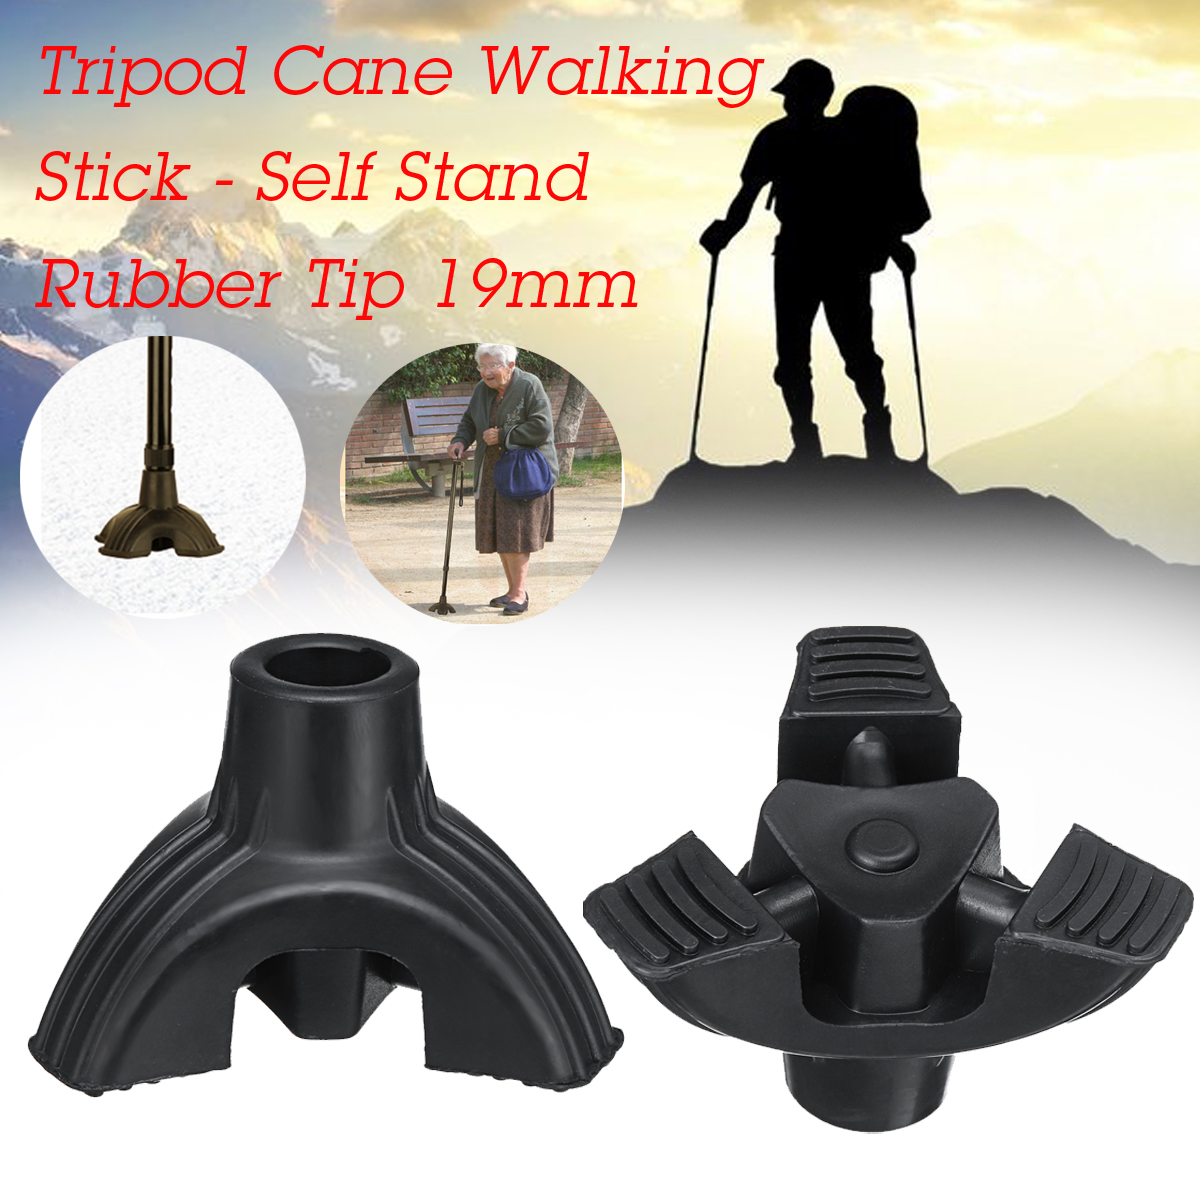 Tripod Cane Walkers Walking Stick Self Stand Rubber Tip 19mm